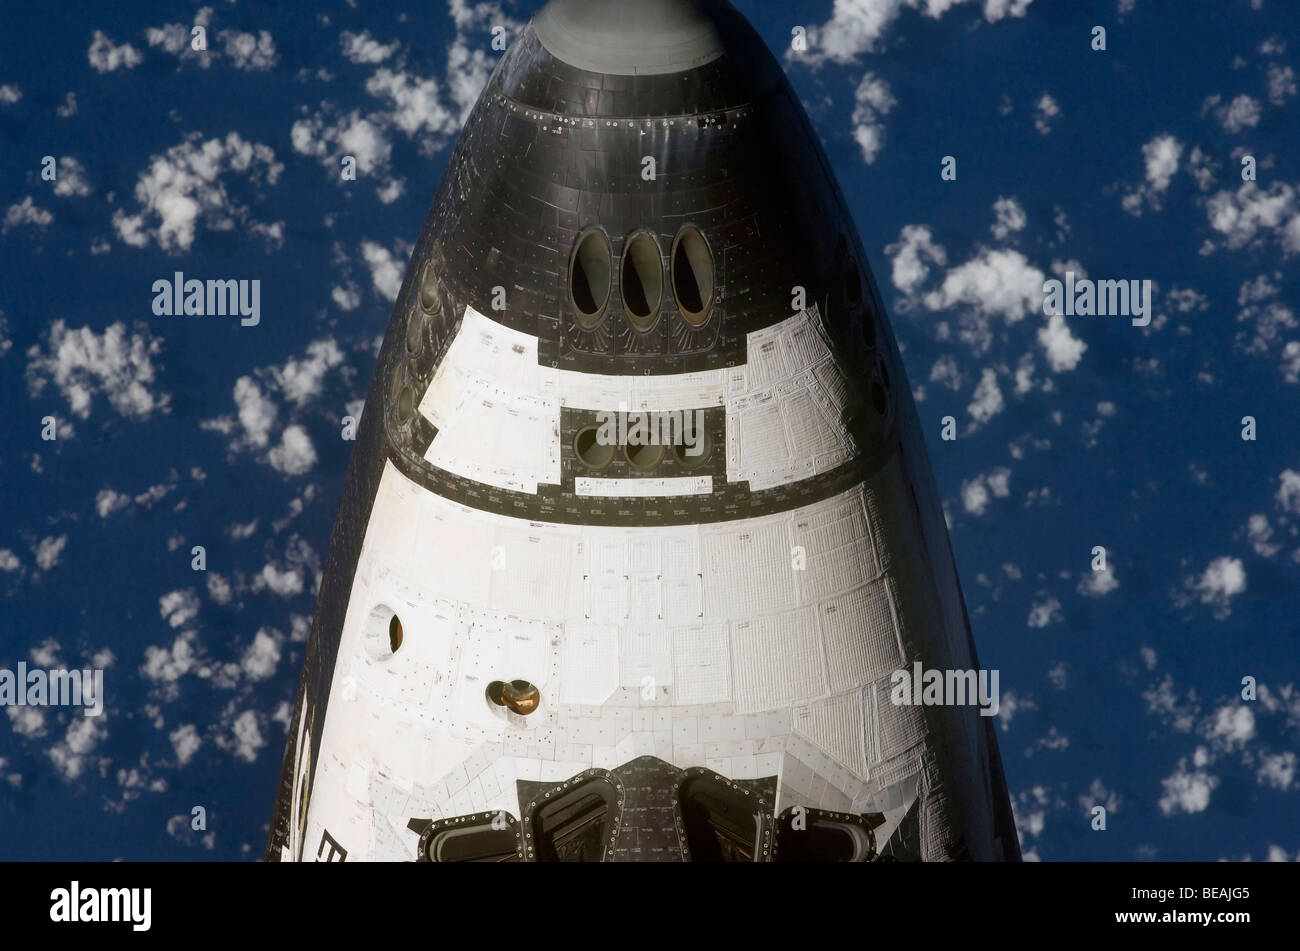 Nose of the Space Shuttle Enterprise photographed from above.  Optimised version of an original NASA image. Credit - Stock Image